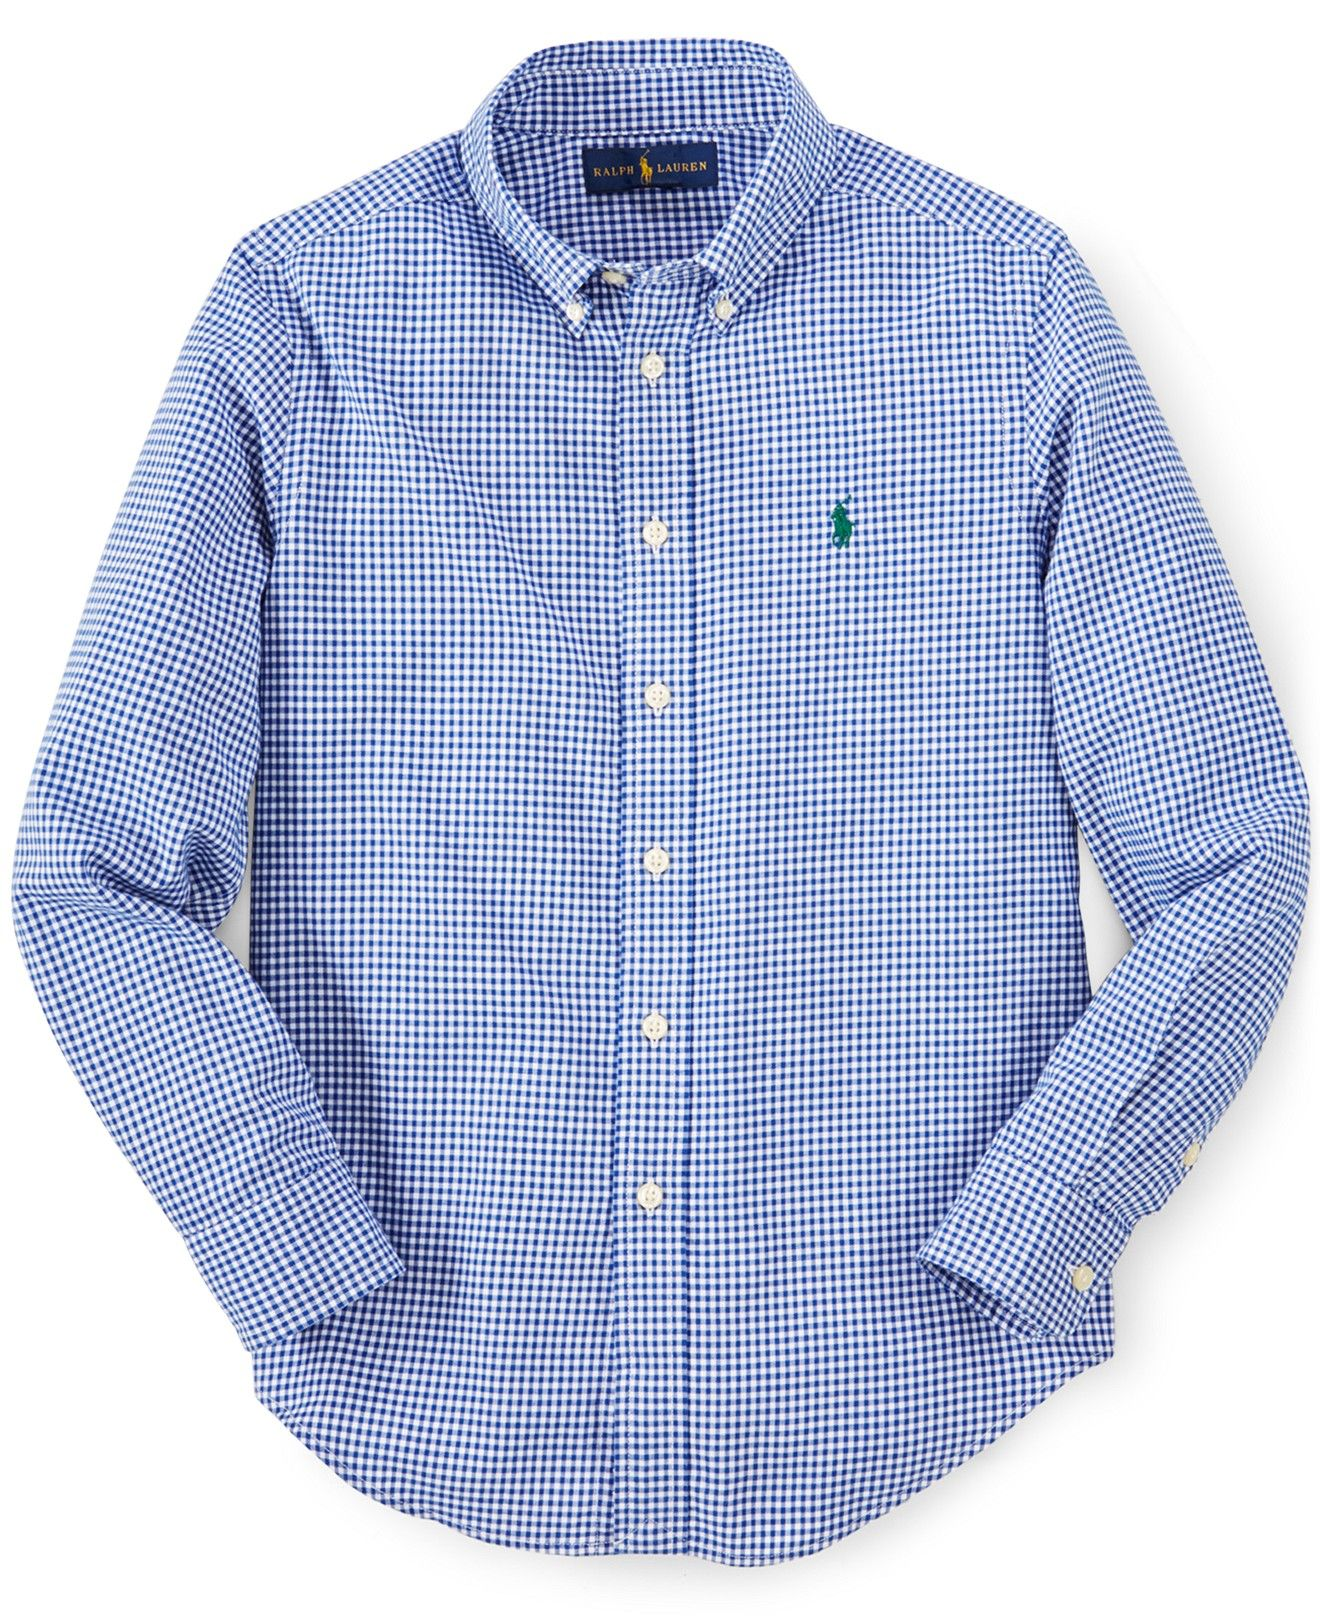 Ralph Lauren Little Boys' Gingham Blake Shirt - Toddler Boys (2T-5T) - Kids & Baby - Macy's